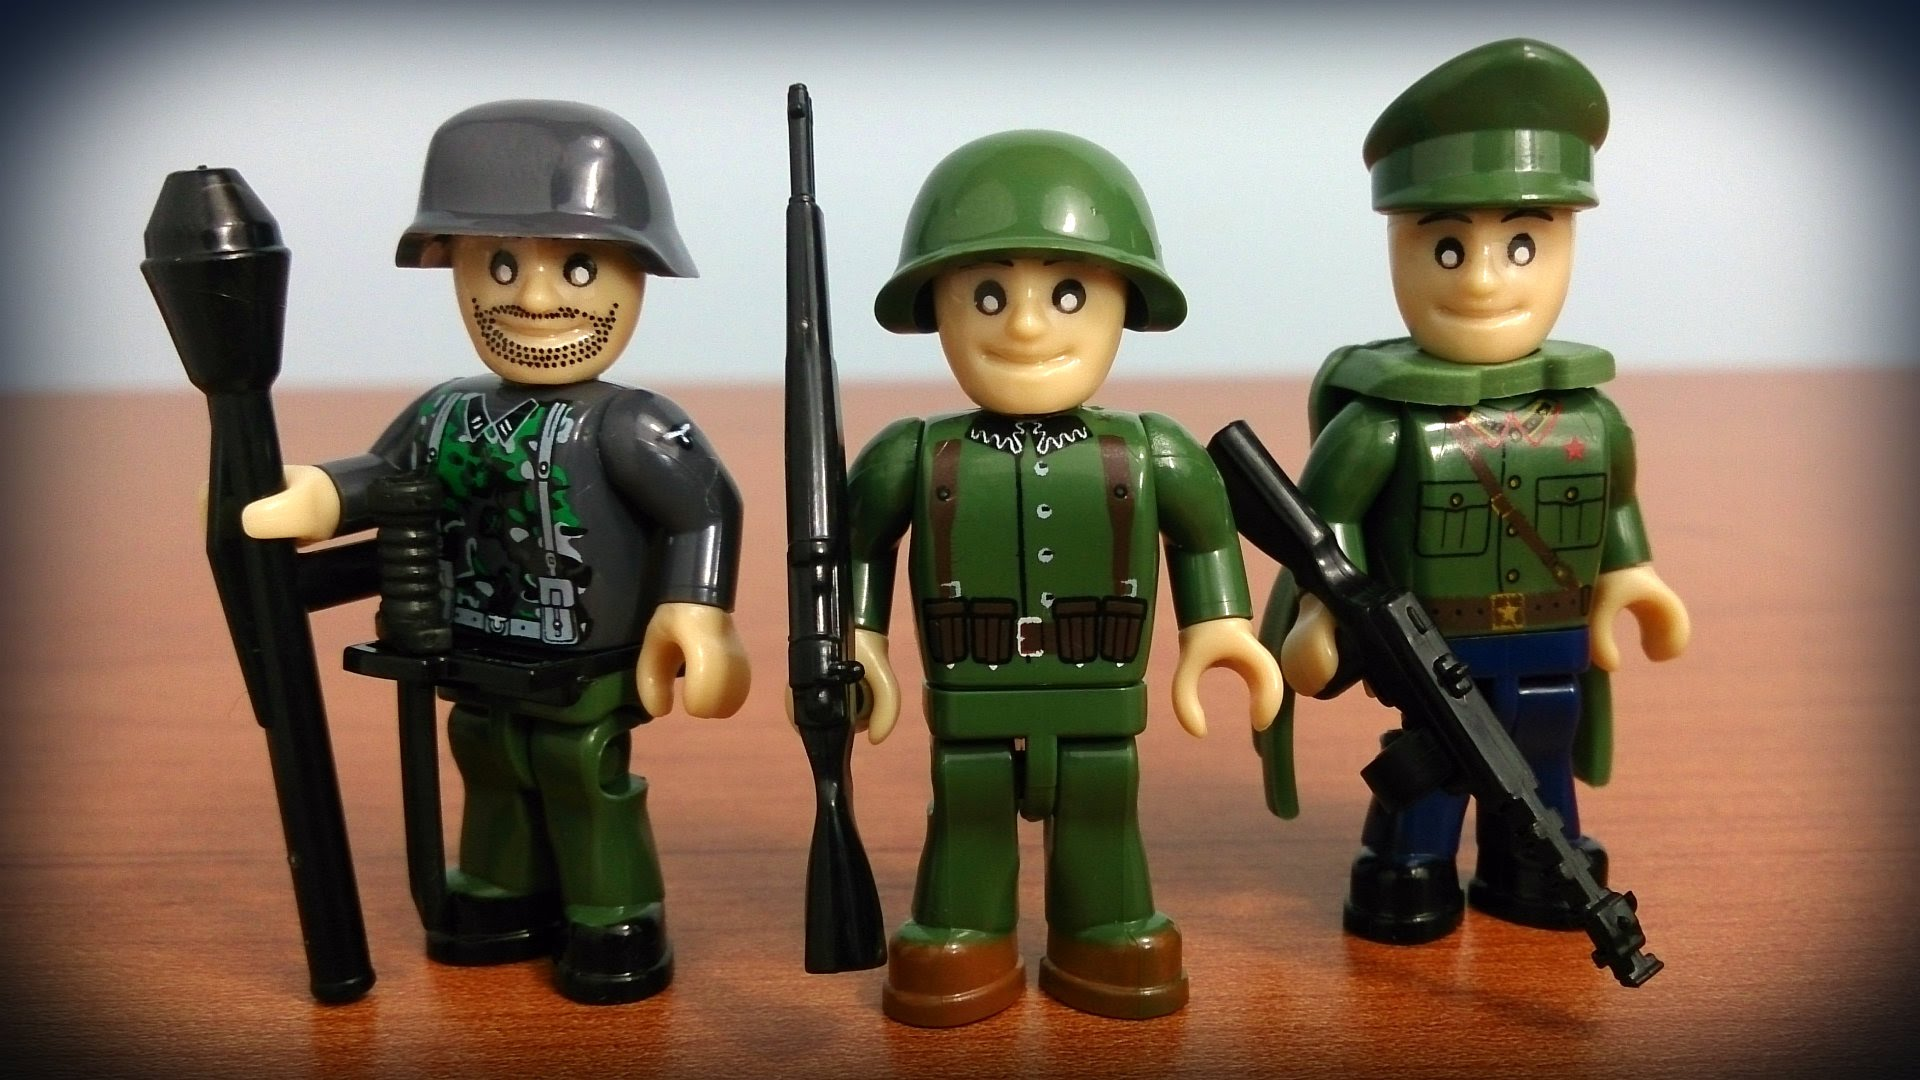 3 figures & accessories (2025) Cobi Small Army WWII